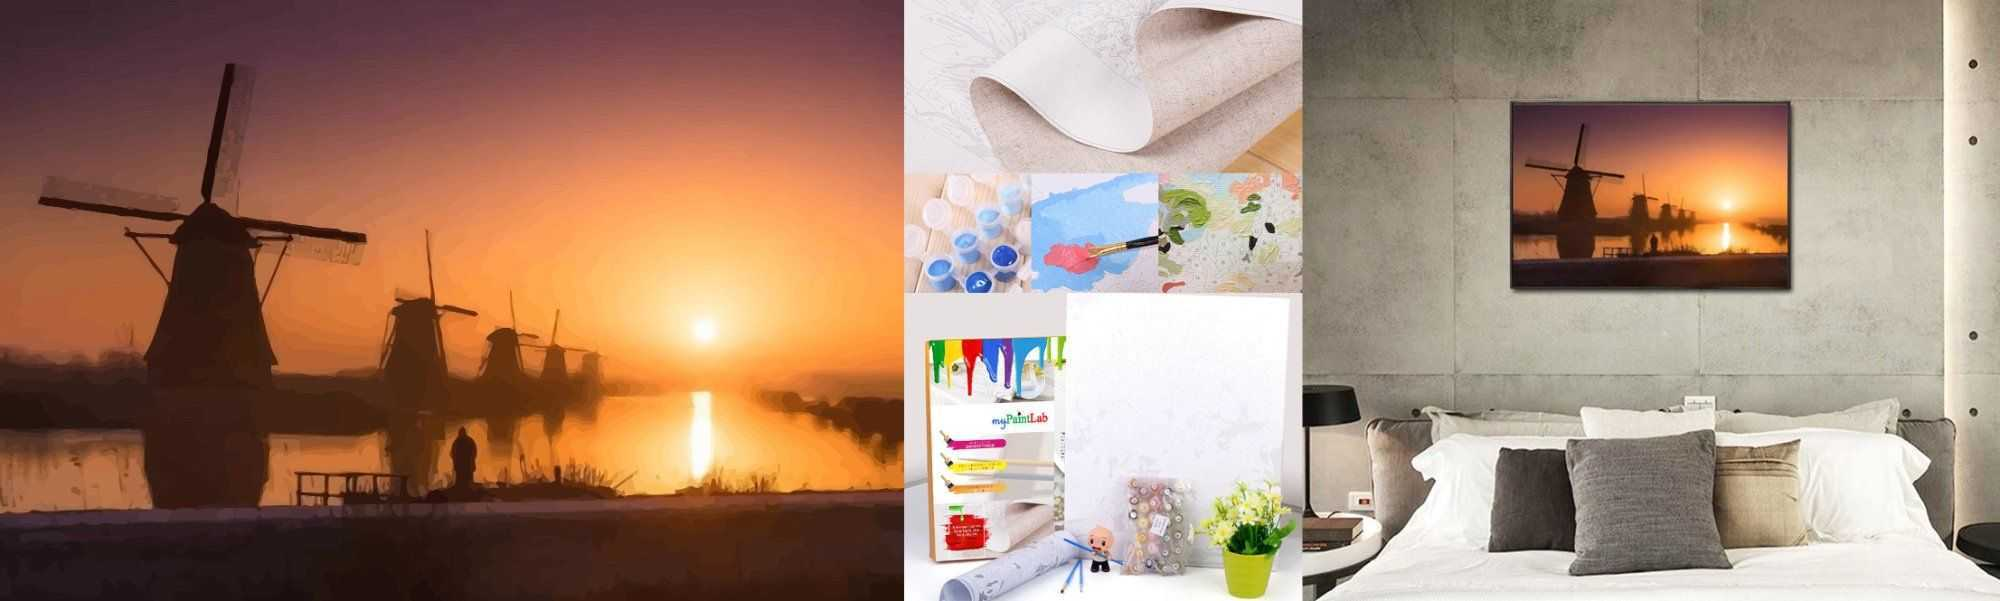 Customized Painting by Numbers kit for Tourism Industry in the Netherlands